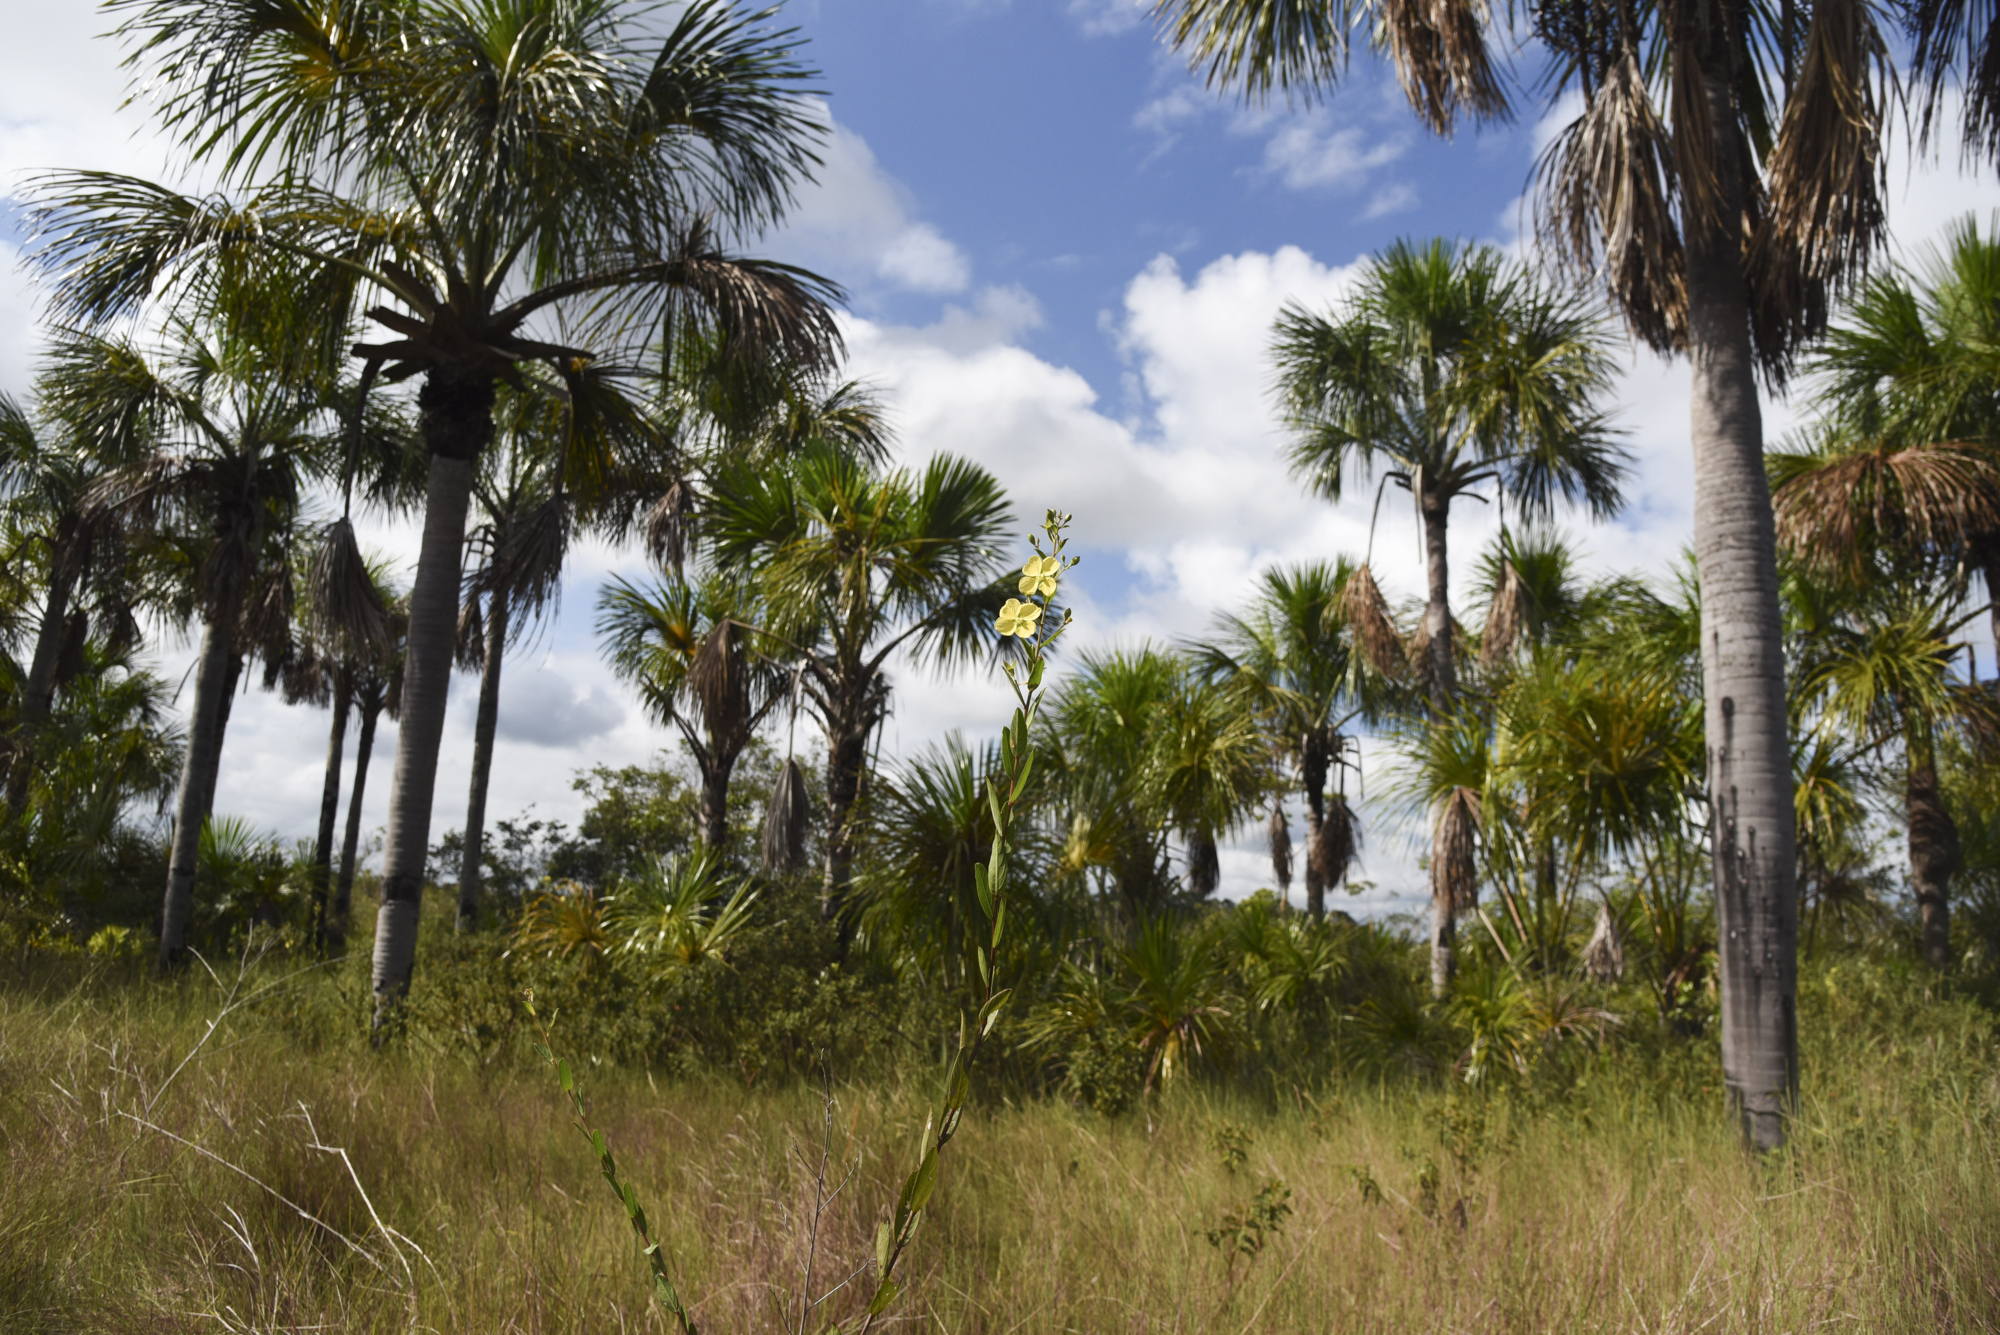 Clusters of palm trees provide ideal habitat for some Pampas' birds such as parrots, parquets and the White woodpecker.